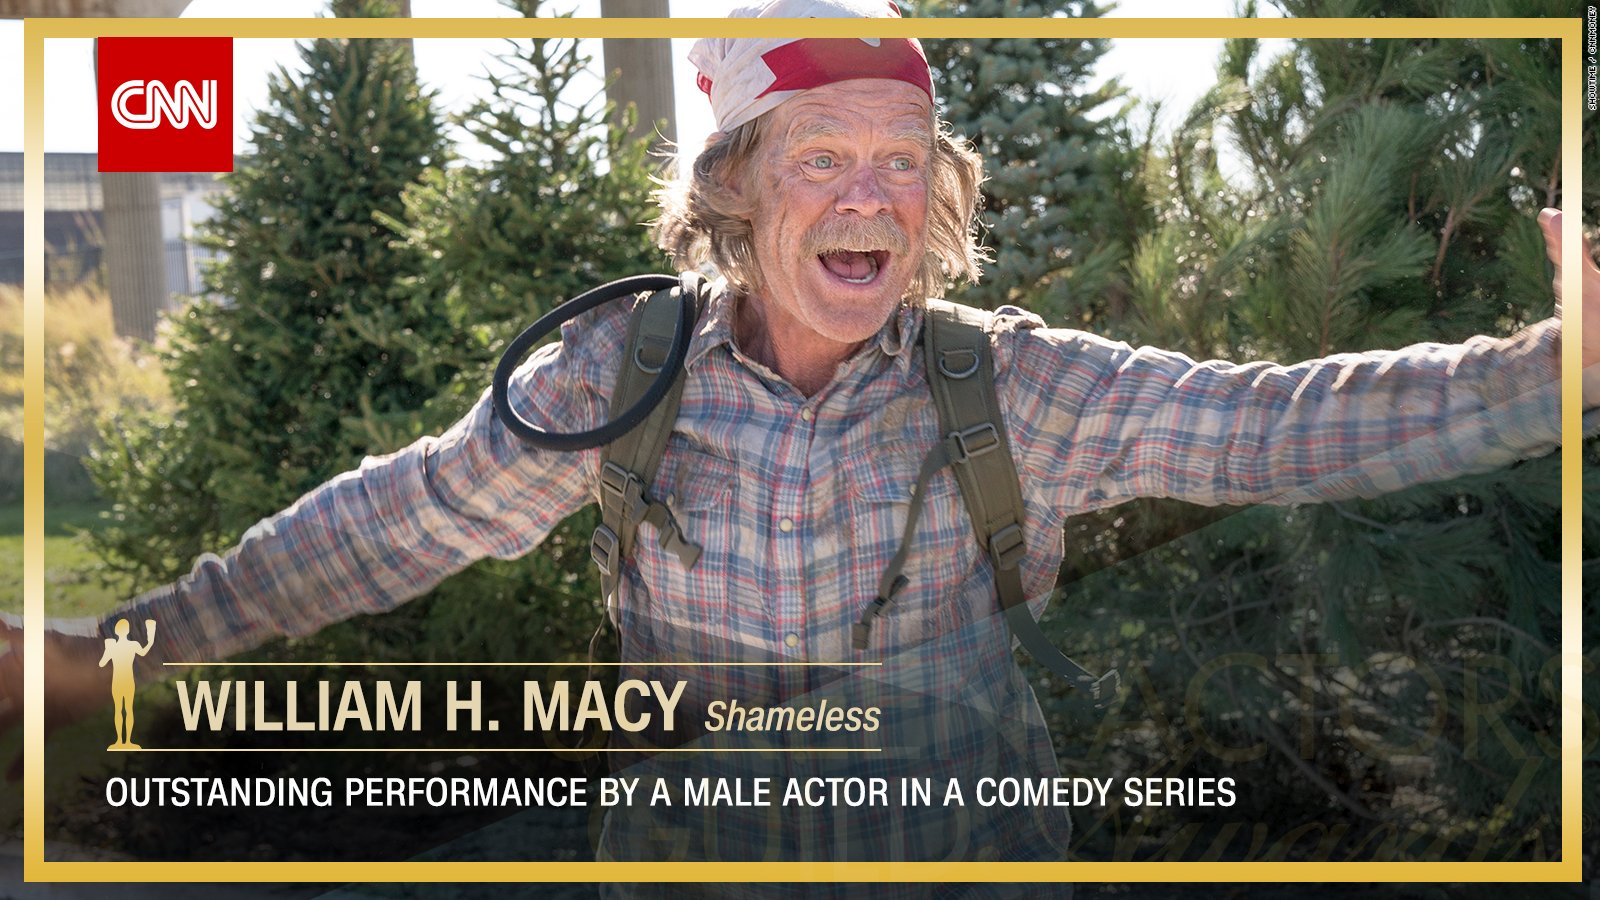 William H. Macy wins Outstanding Performance by a Male Actor in a Comedy Series. https://t.co/RyIMMFLDsS #SAGAwards https://t.co/ZoErMPqoAV